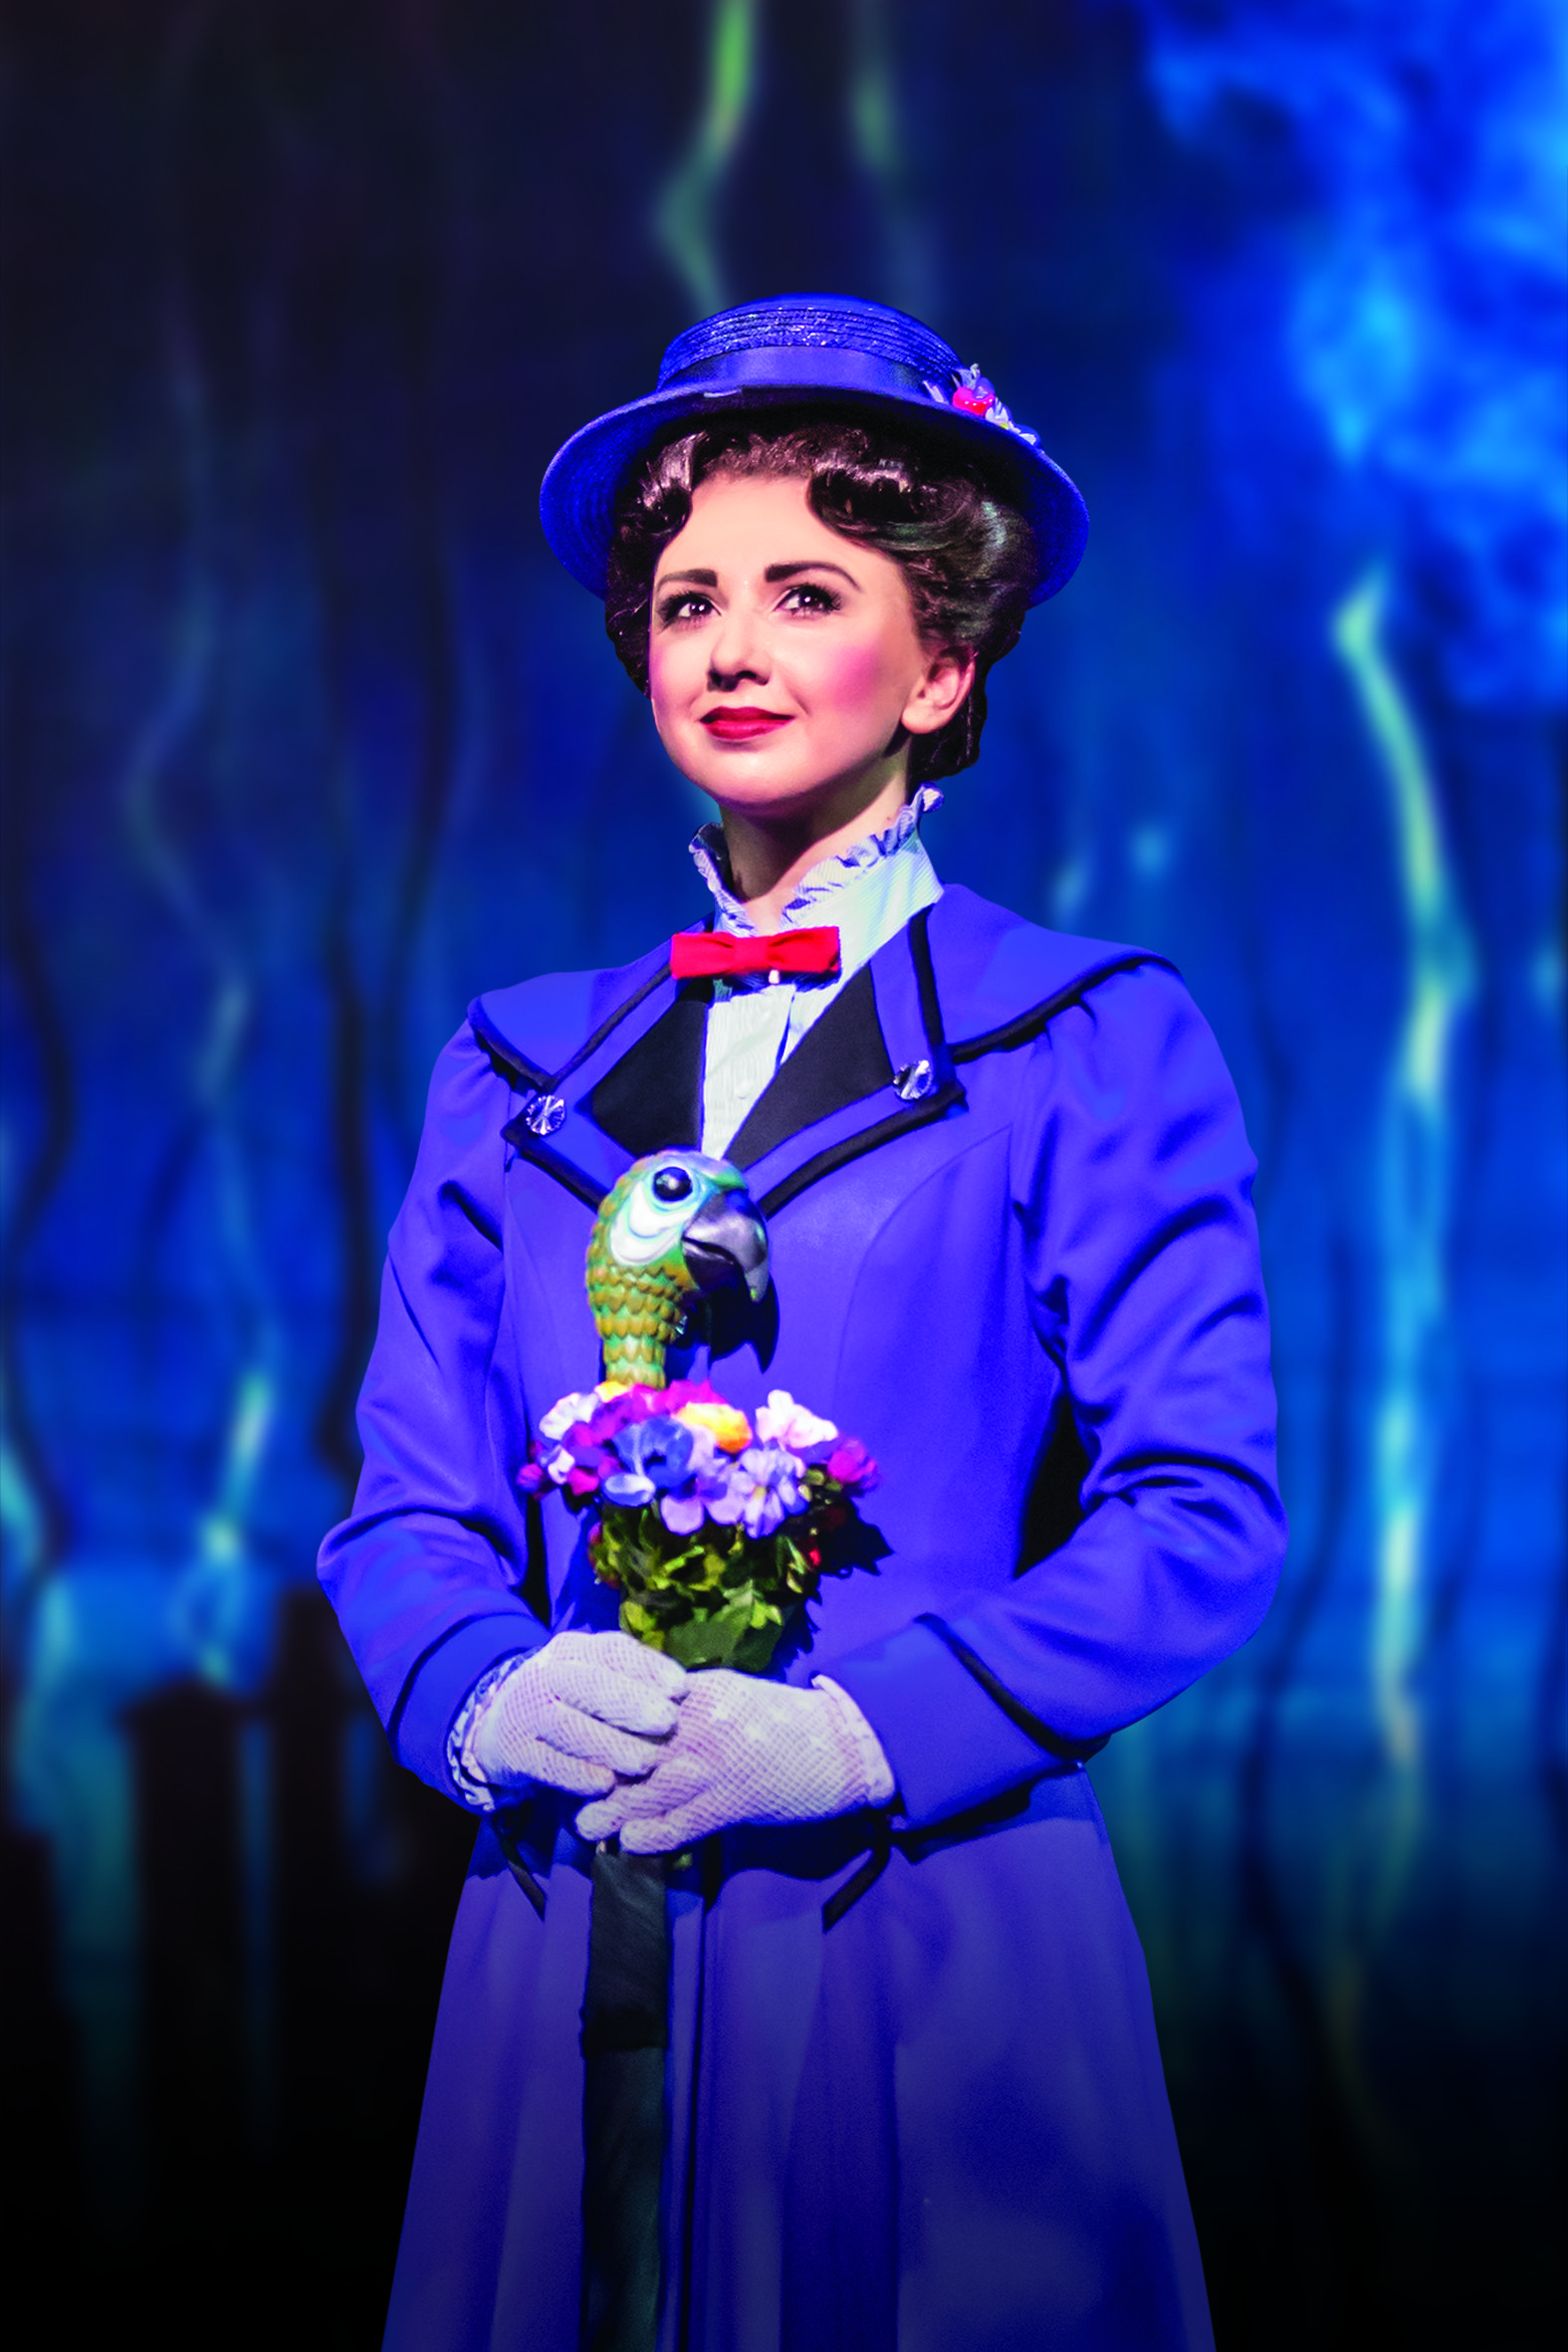 Disneys Musical Mary Poppins Ab Herbst 2016 In Stuttgart Disney Marrypoppins Mary Poppins Musical Stutt Mary Poppins Musical Mary Poppins Kostum Musical